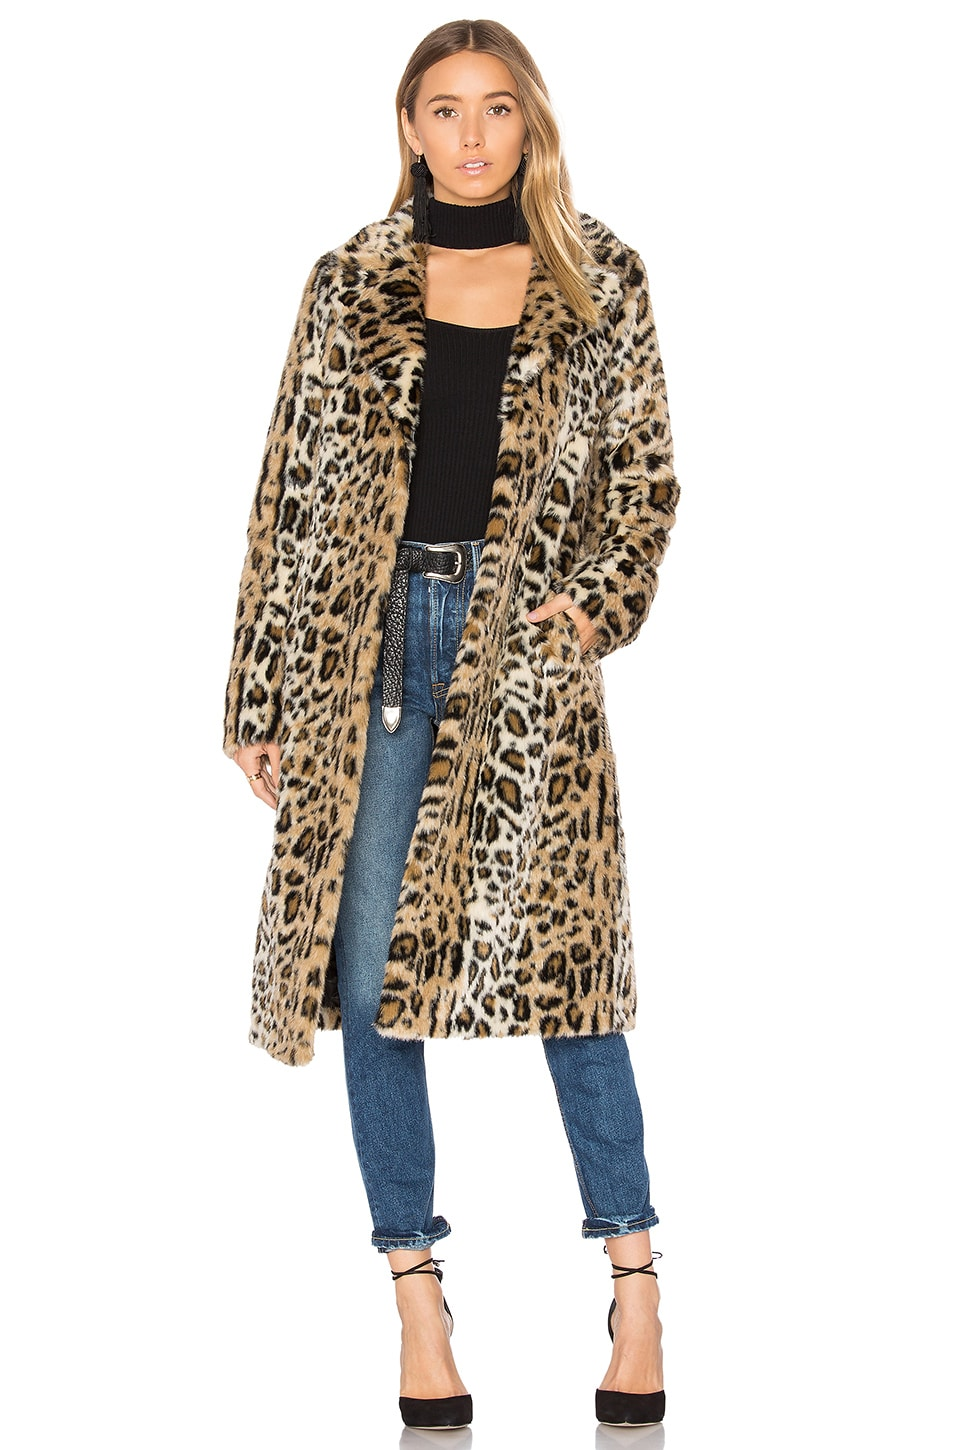 MAJORELLE Fifi Faux Fur Coat in Leopard